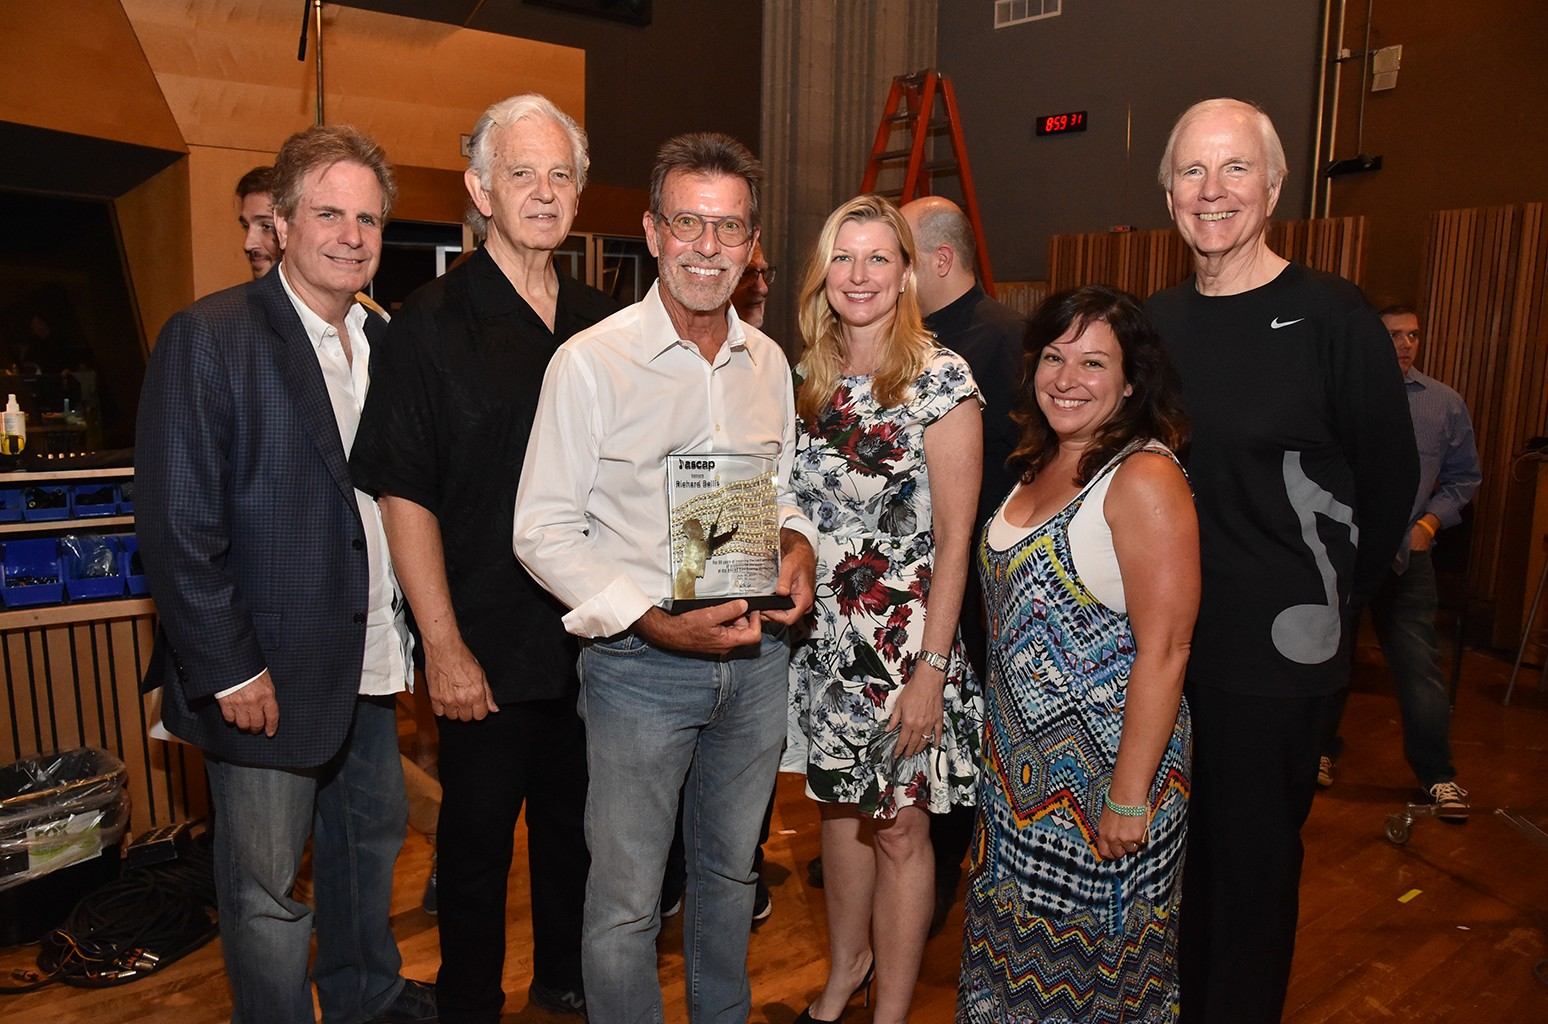 Richard Bellis awarded for mentoring composers in the ASCAP Film Scoring Workshop in Los Angeles.